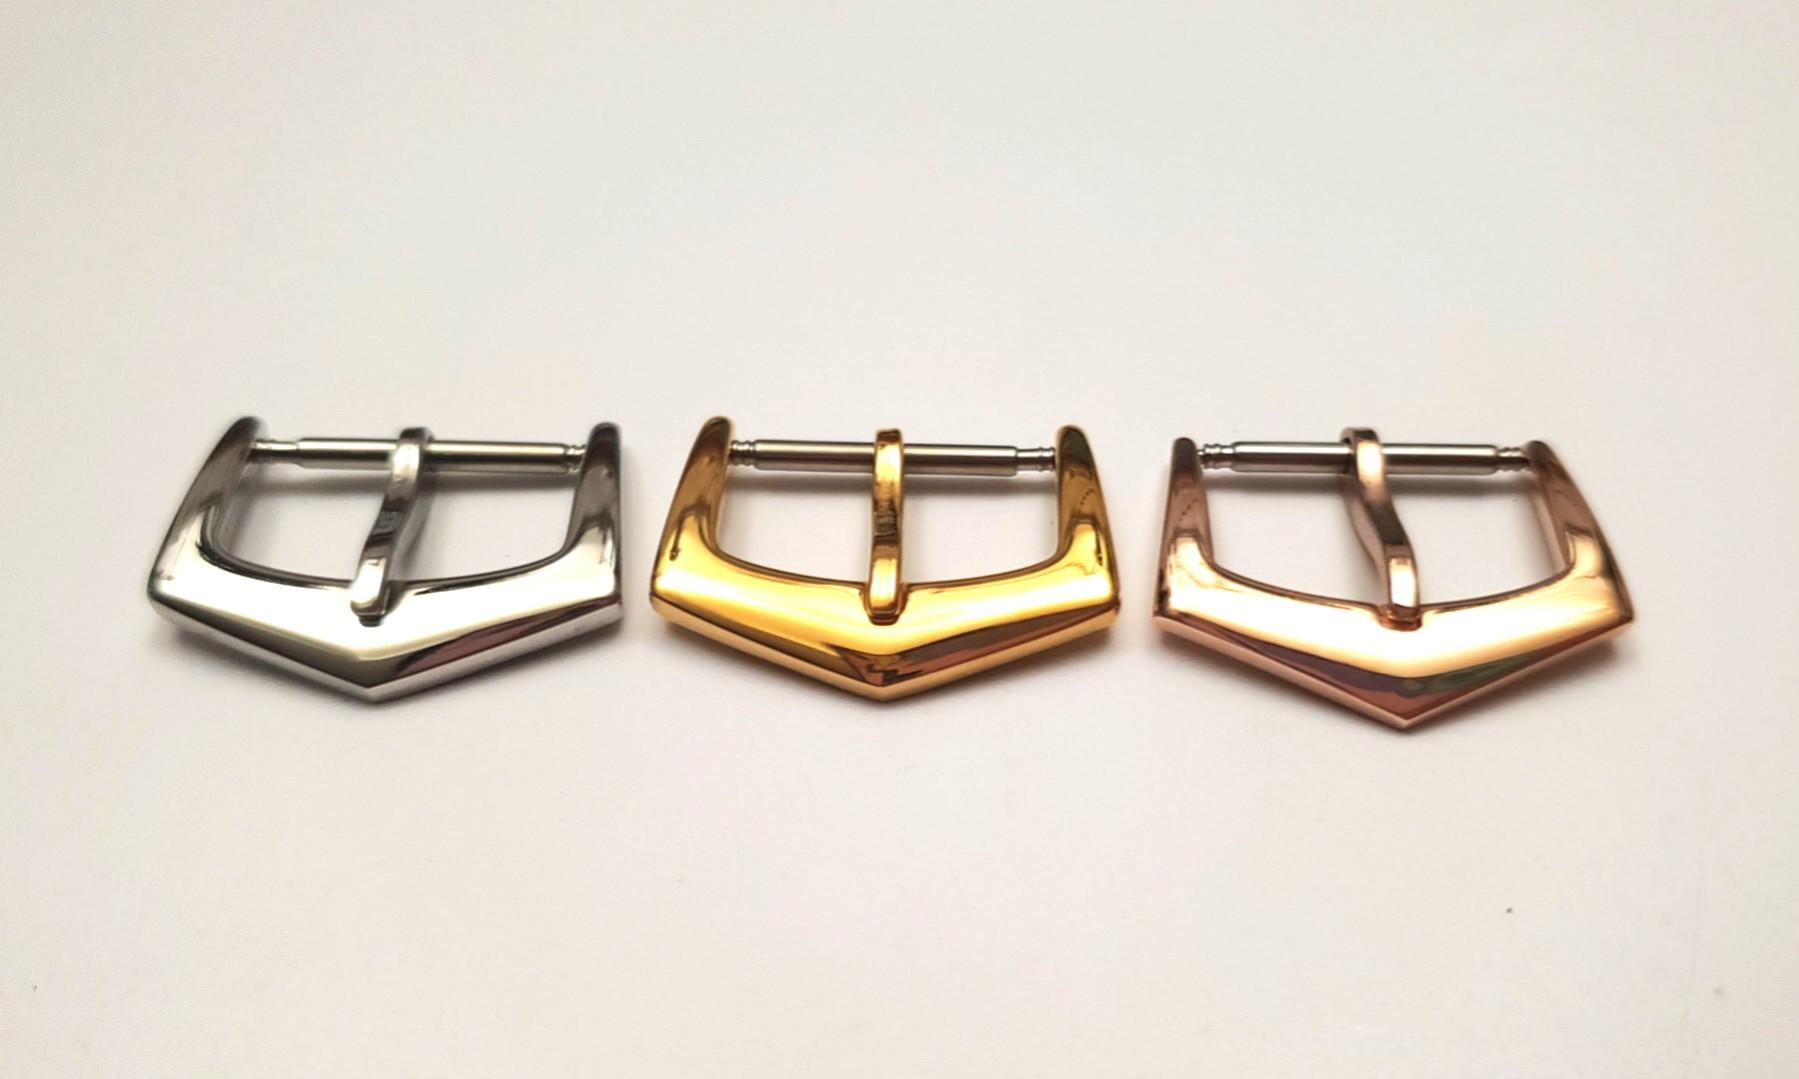 Patek Philippe PP 18mm Silver/ Gold/ Rose Gold Watch Buckle